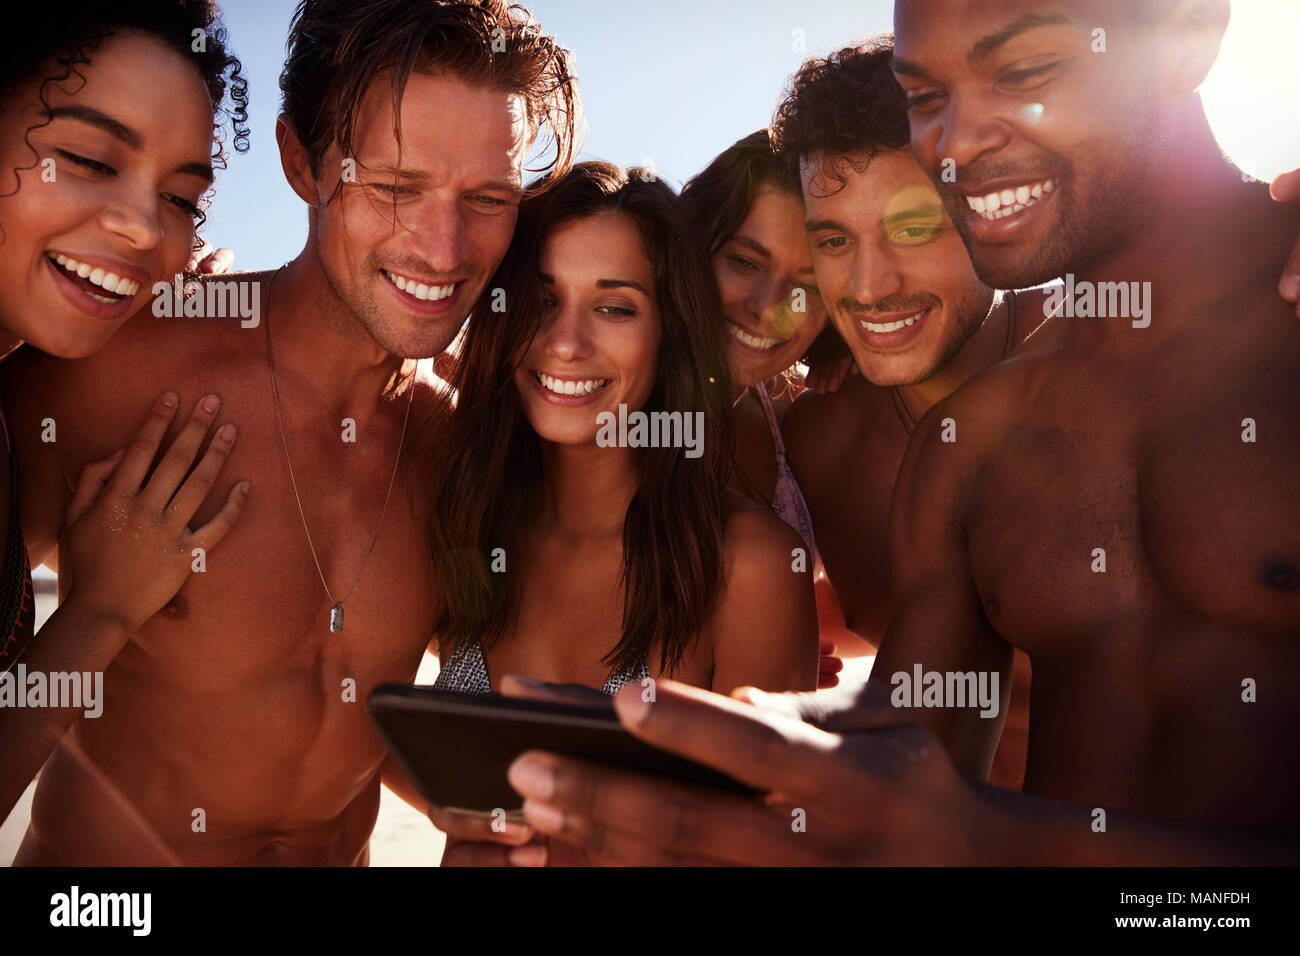 Friends On Beach Vacation Looking At Photo On Mobile Phone - Stock Image